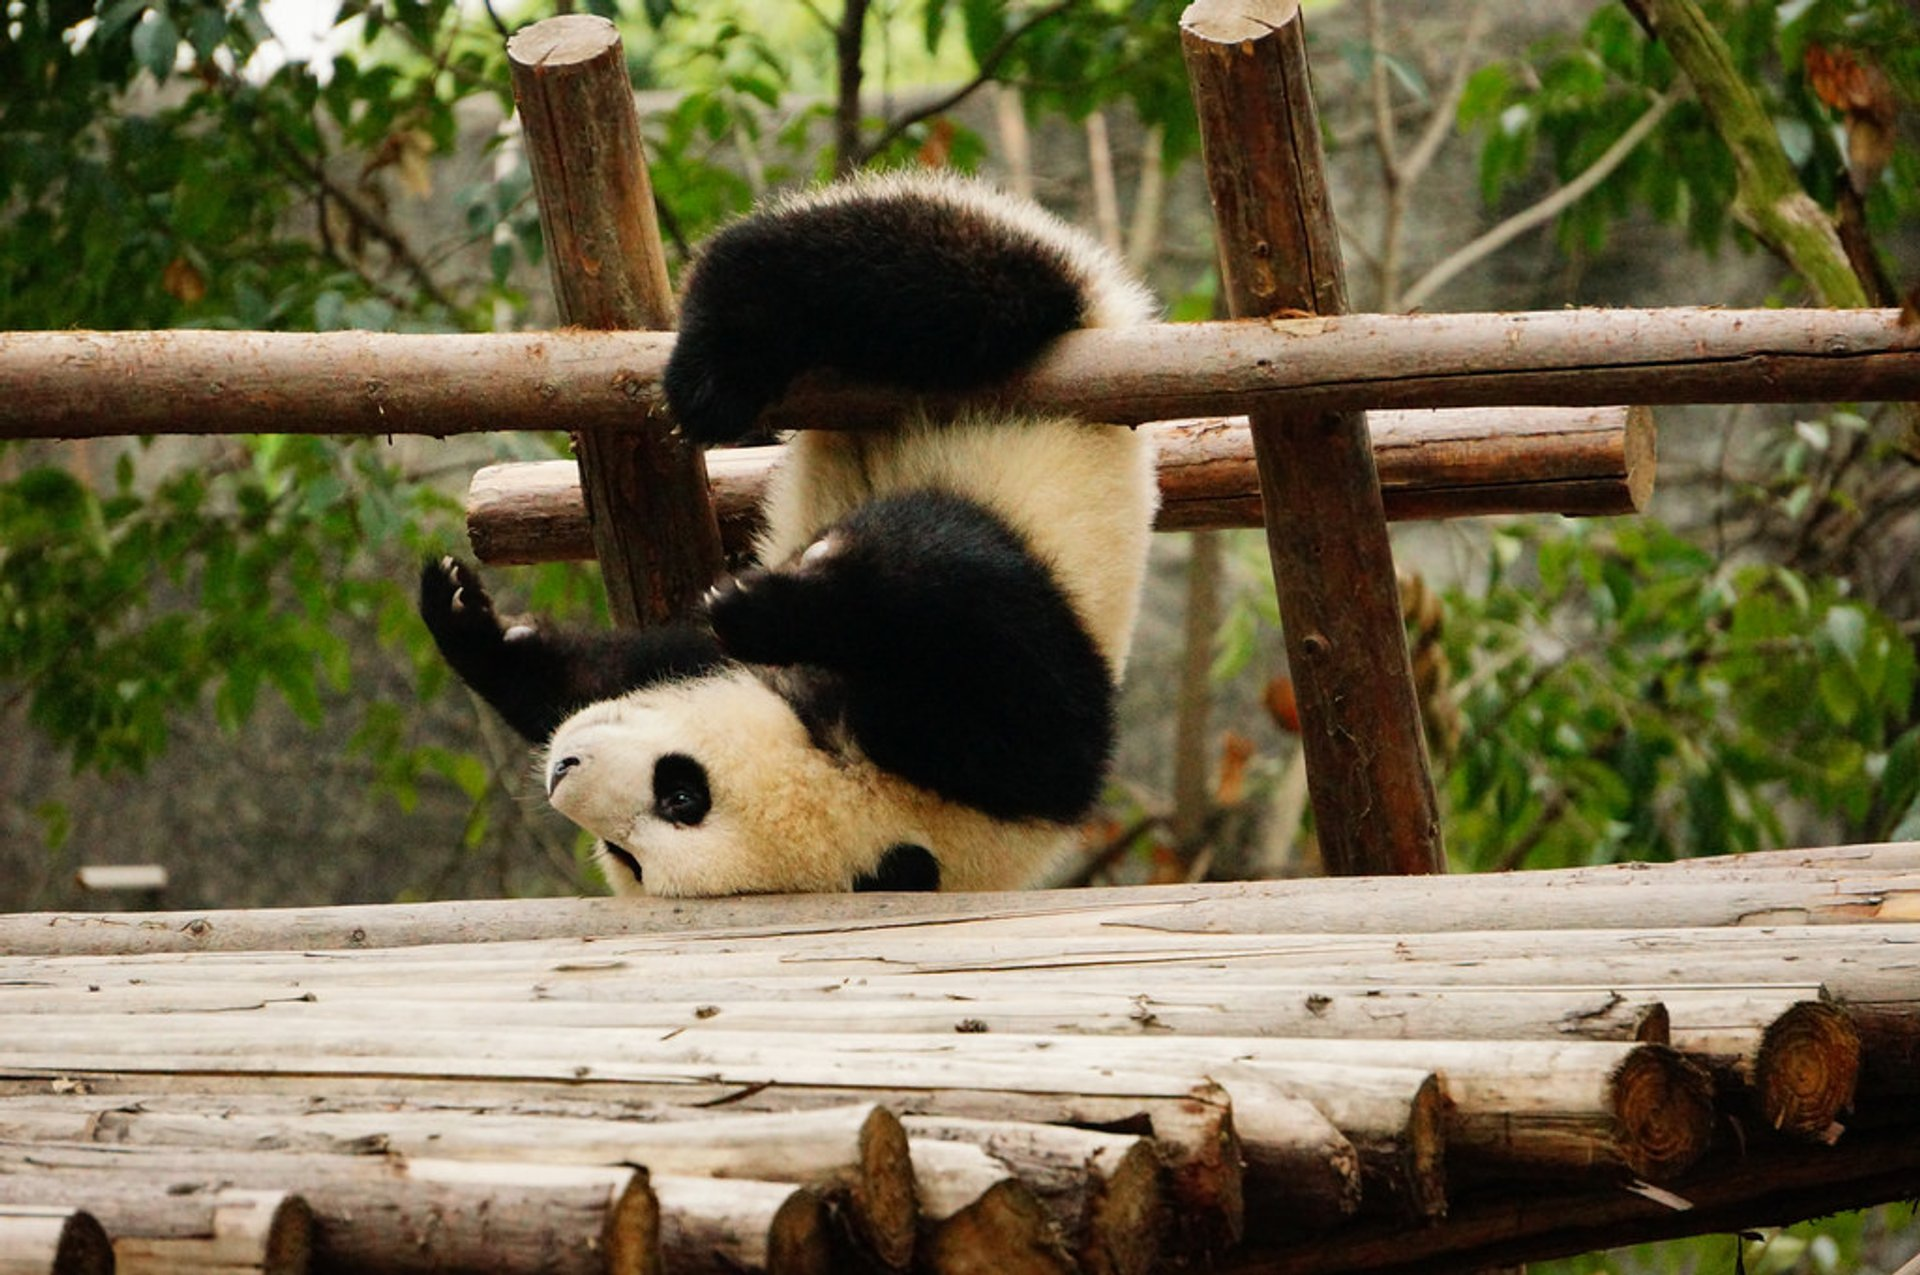 Best time for Giant Pandas in China 2020